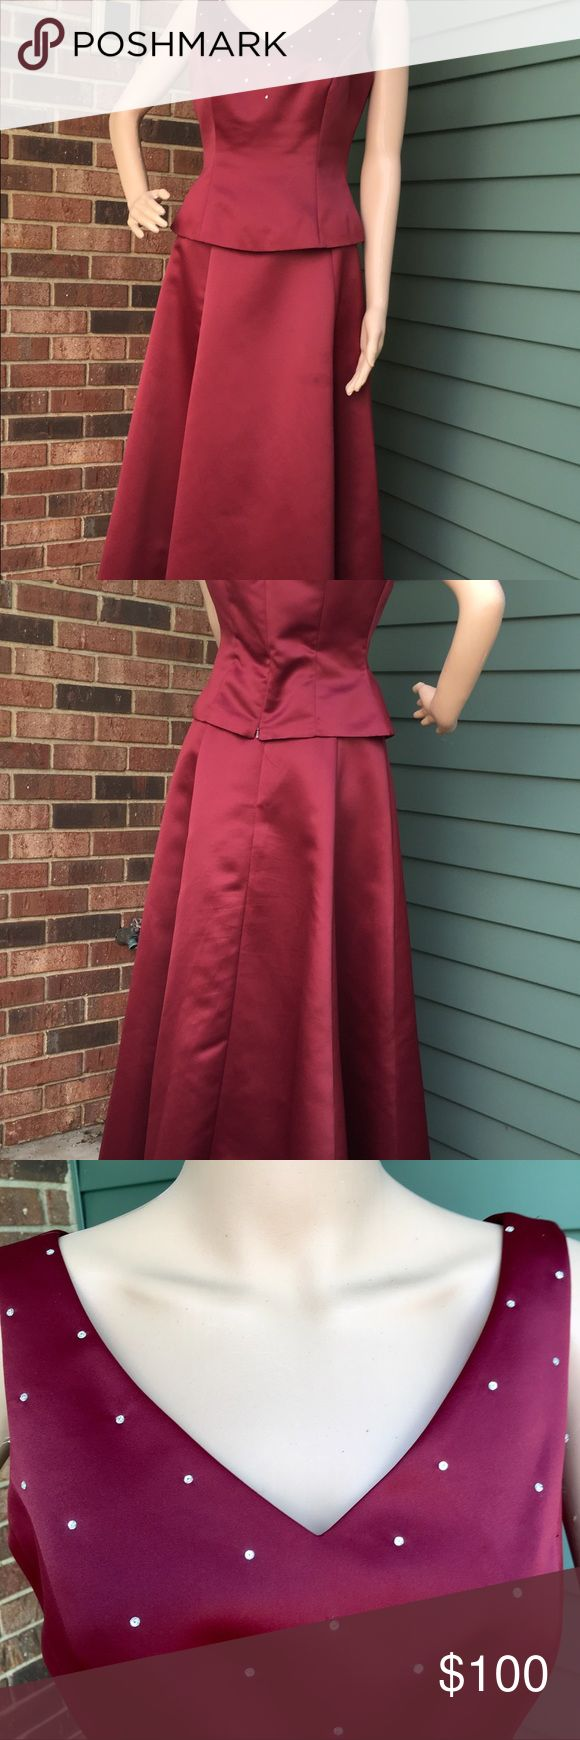 Vintage Long Skirt and Top Evening Wear. Separates in Wine Colored Satin - Like Polyester.... Fully lined. Like New. Vintage Dresses Wedding